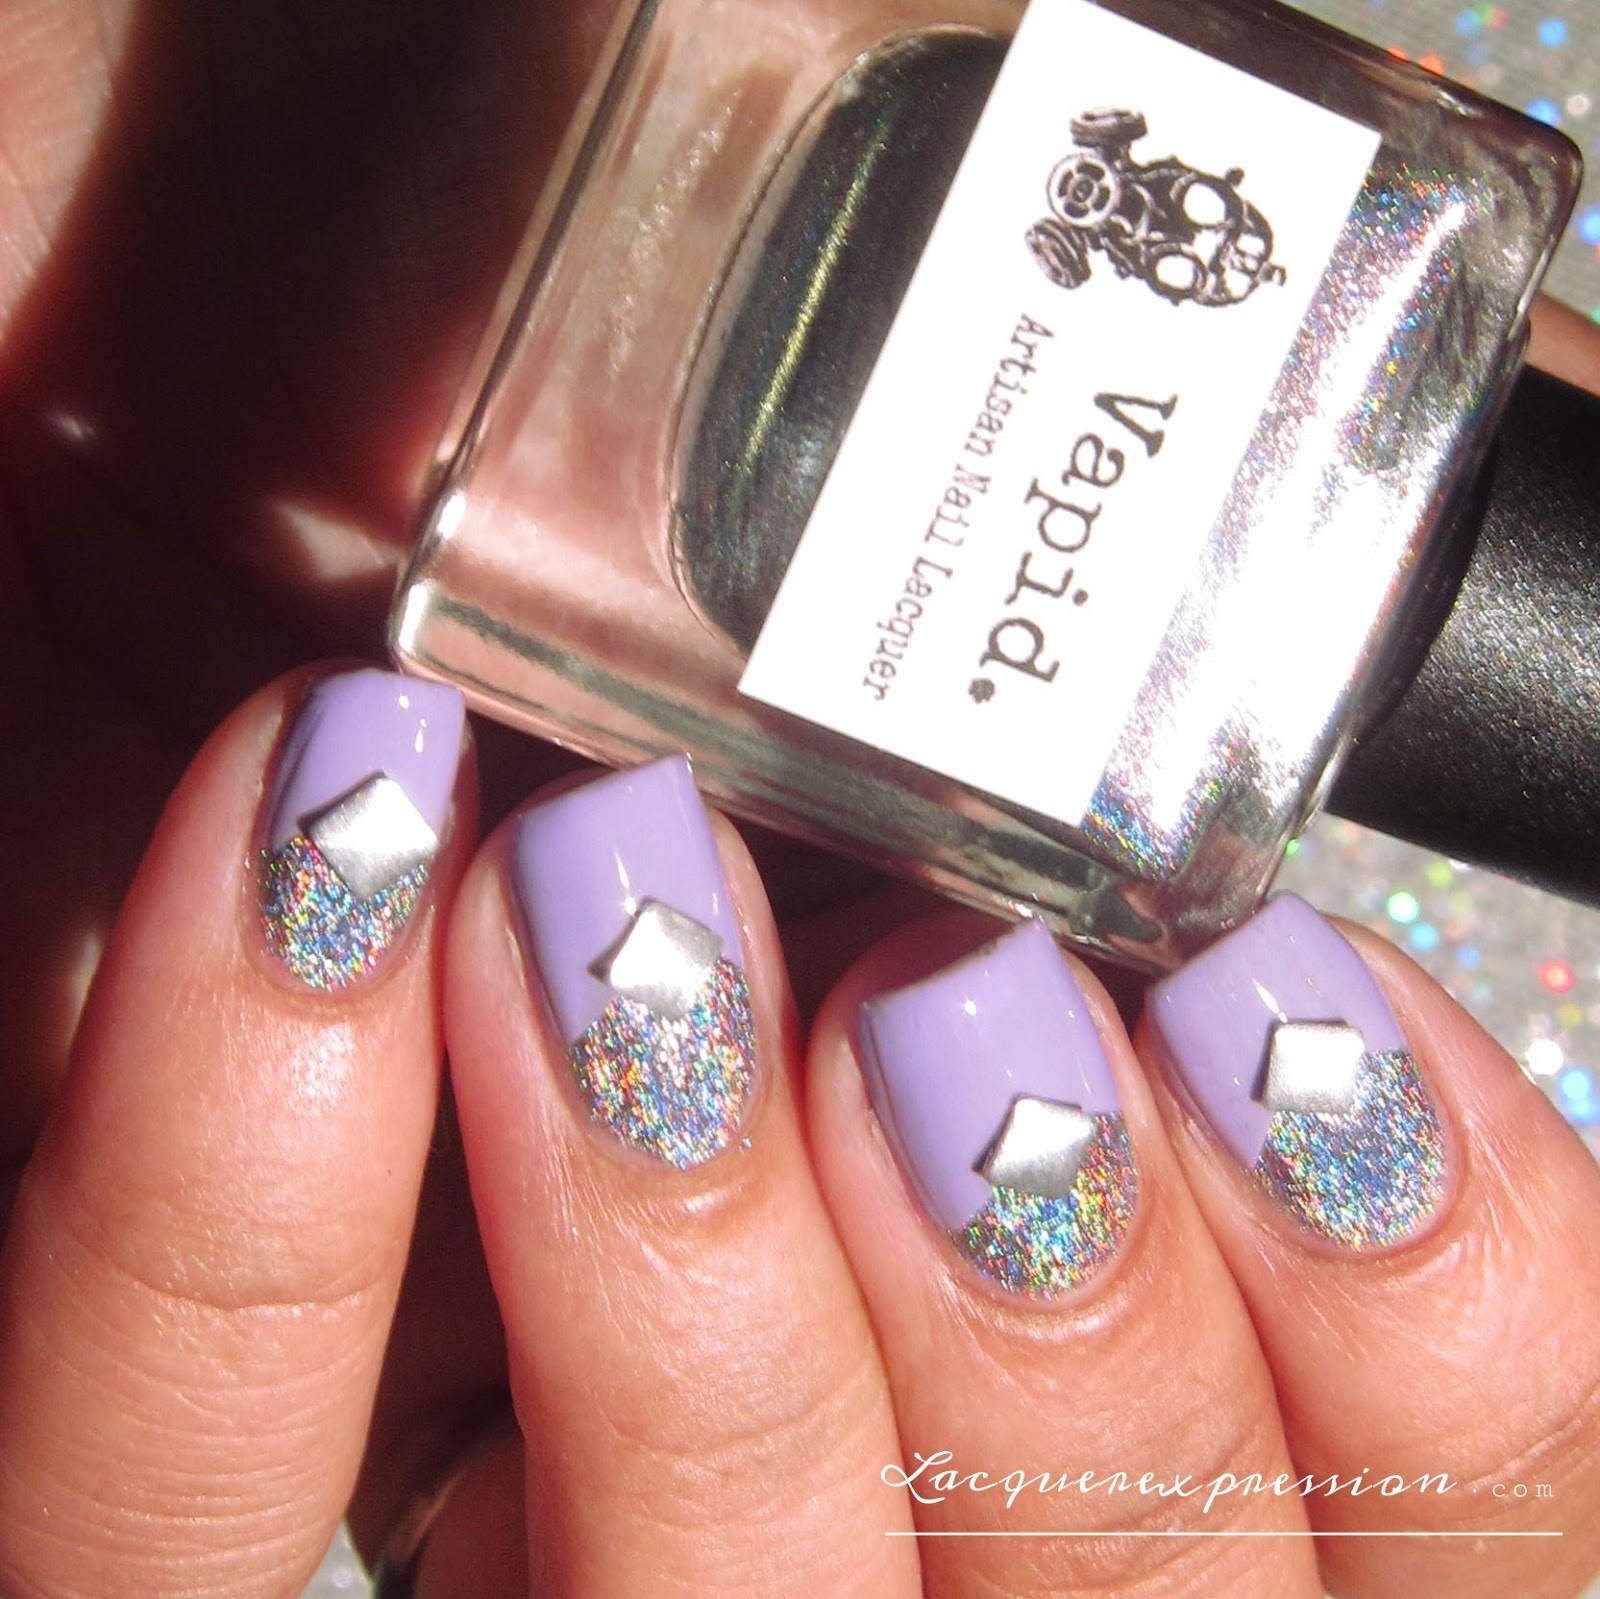 Mainstream swatch and review - Swarovski TRENDS nail art crystals ...